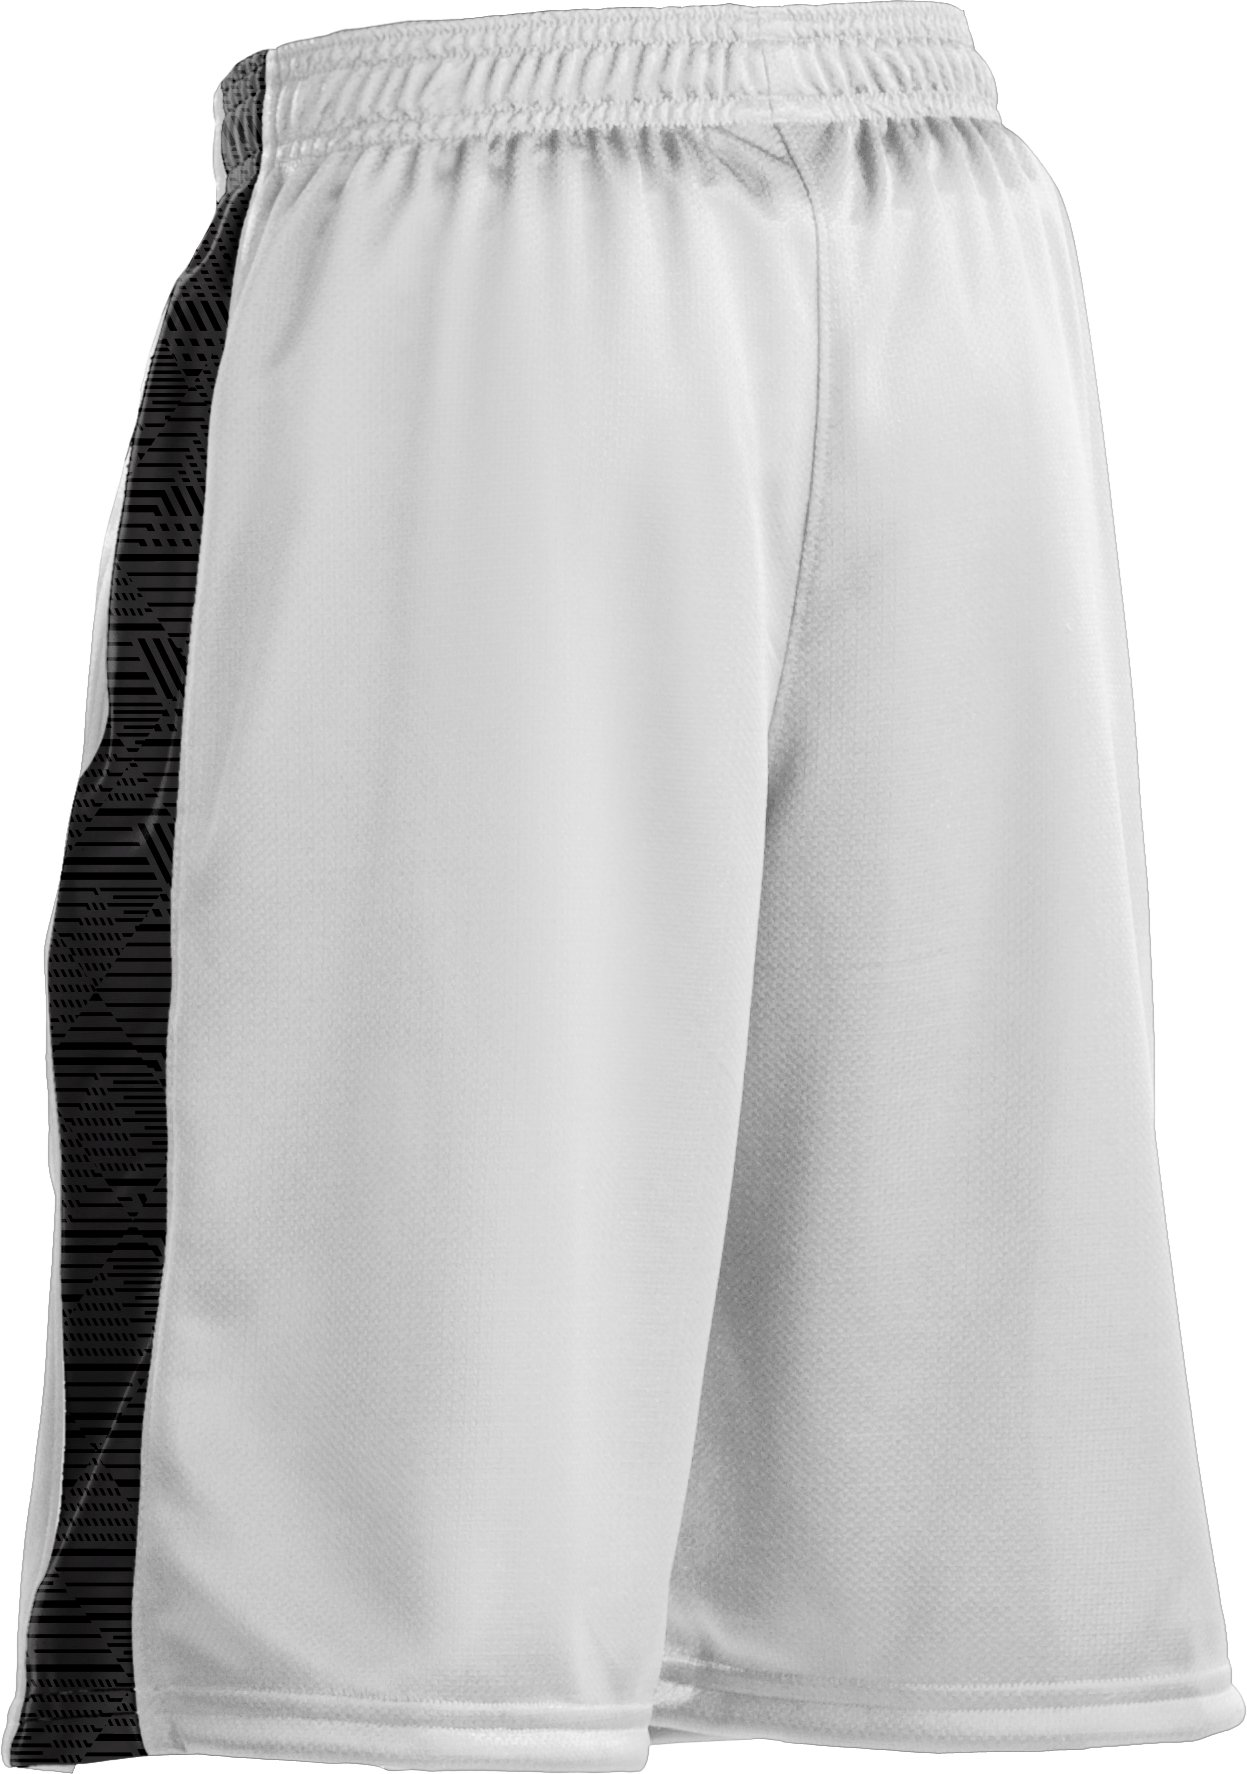 "Boys' UA Ultimate 9"" Shorts, White"